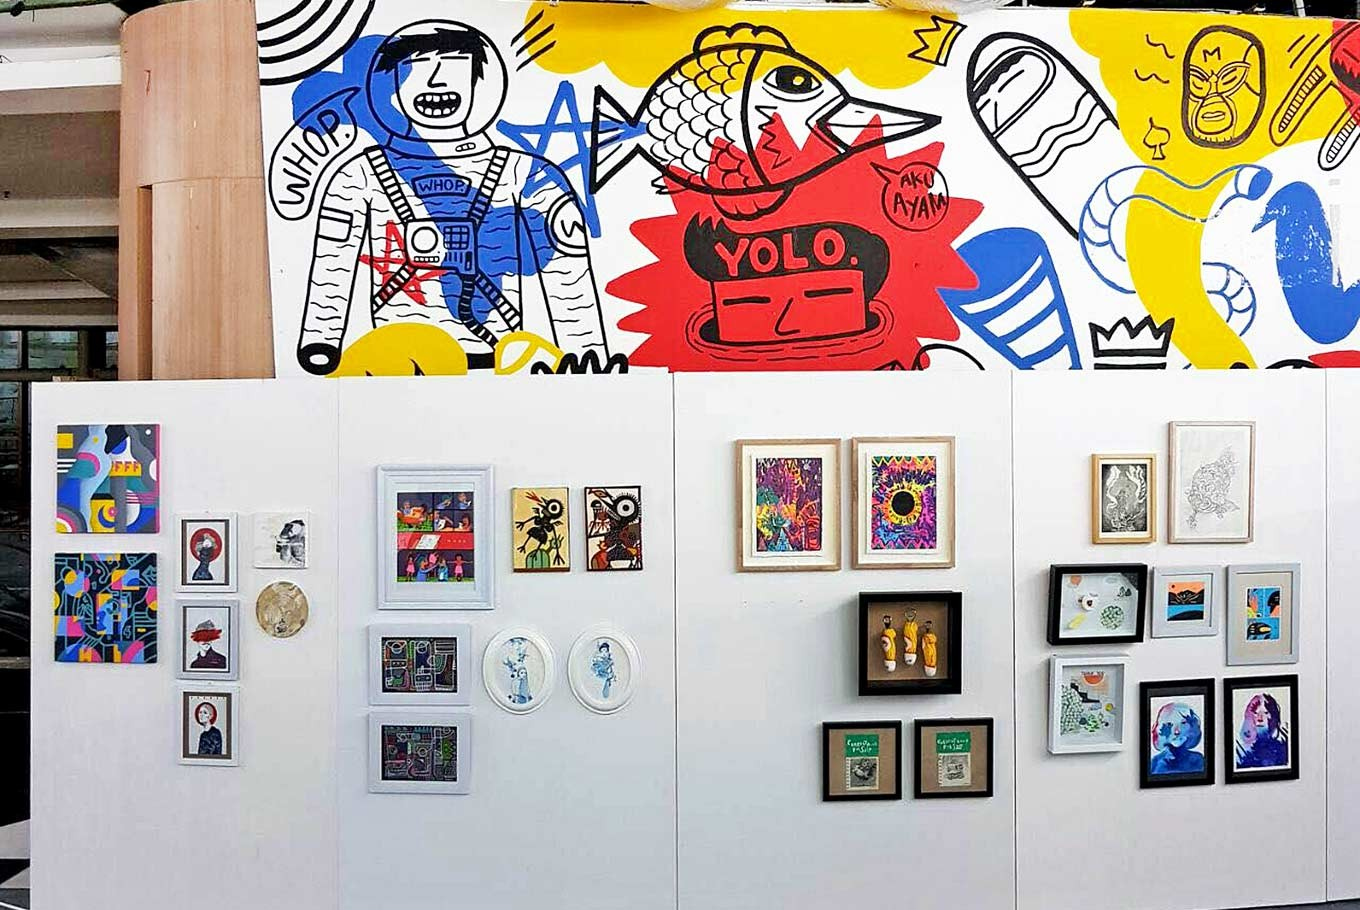 Artists leave Instagram to sell art with heart